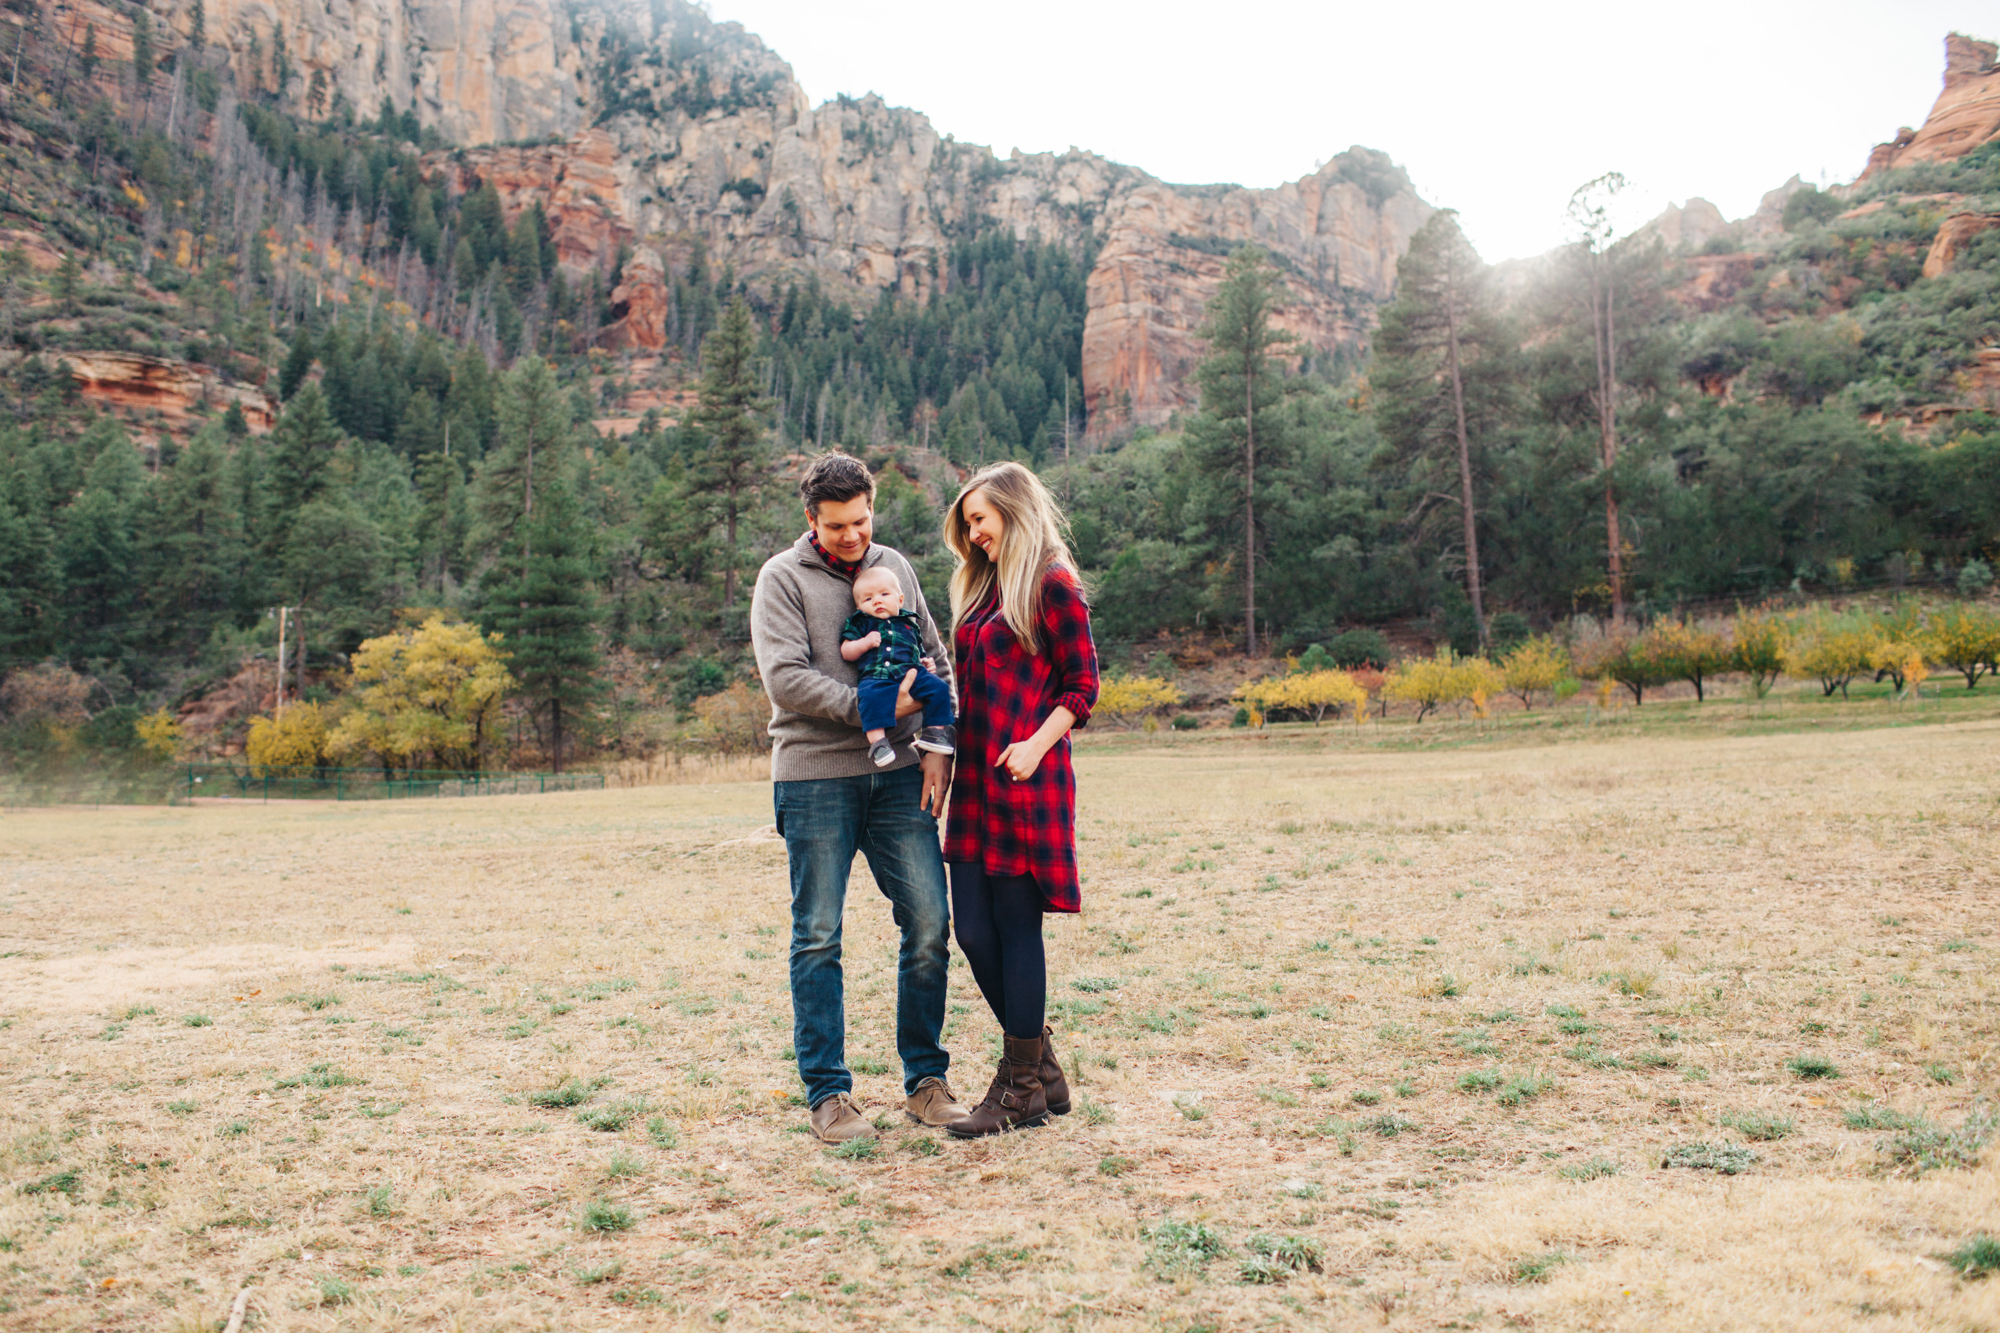 epper family lifestyle portraits ©ten22 studio sedona oak creek canyon